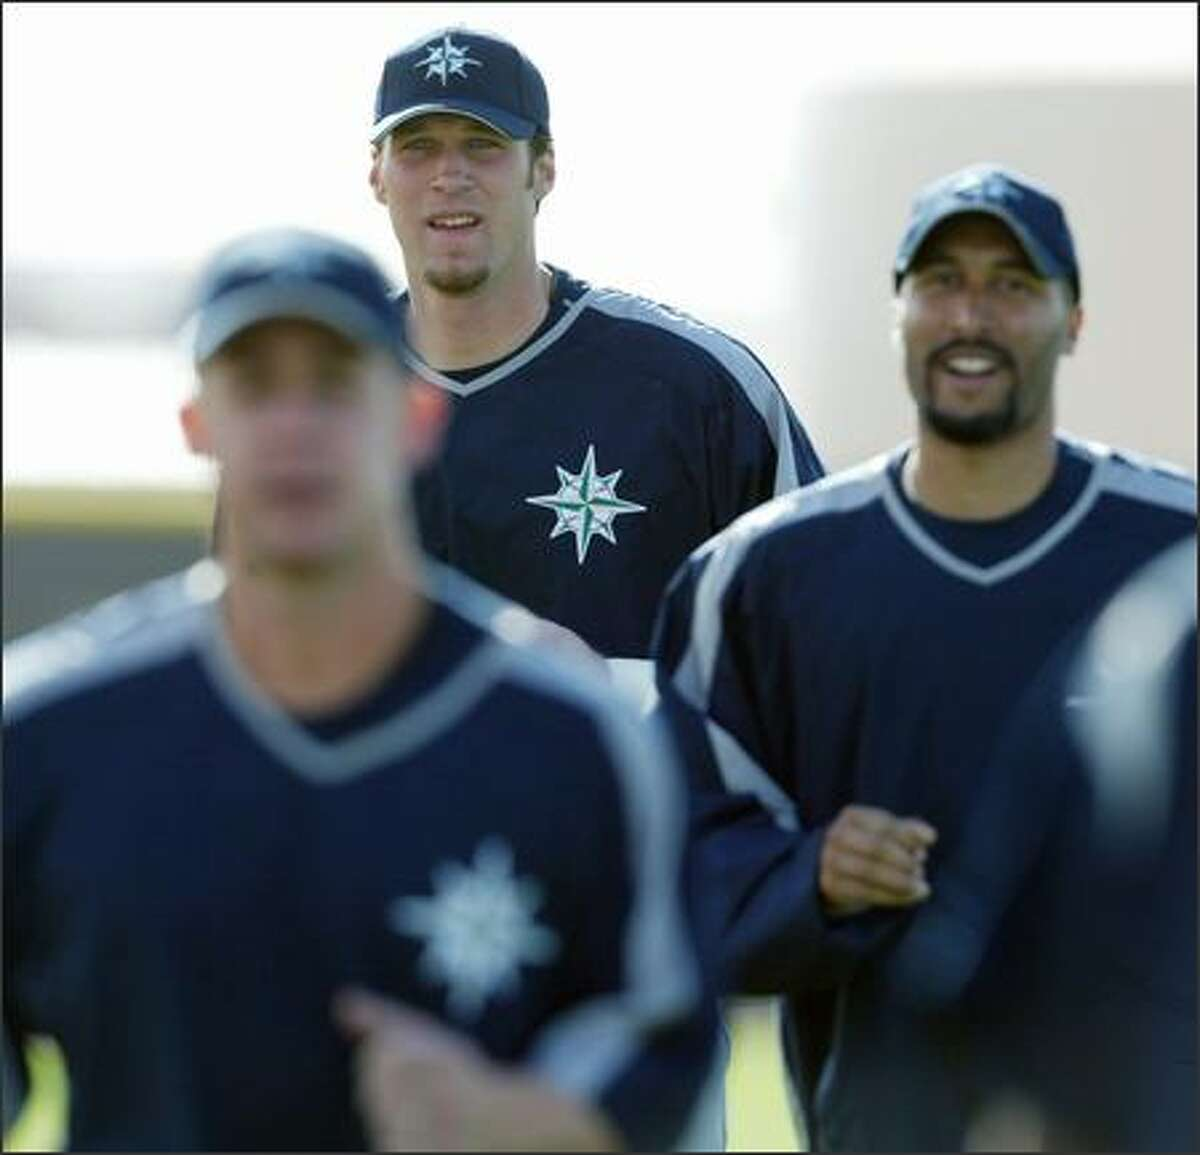 Richie Sexson towers over teammates Bret Boone (foreground) and Randy Winn as they run during the first full-squad workout for the 2005 Seattle Mariners at spring training in Peoria, Ariz. on Tuesday.